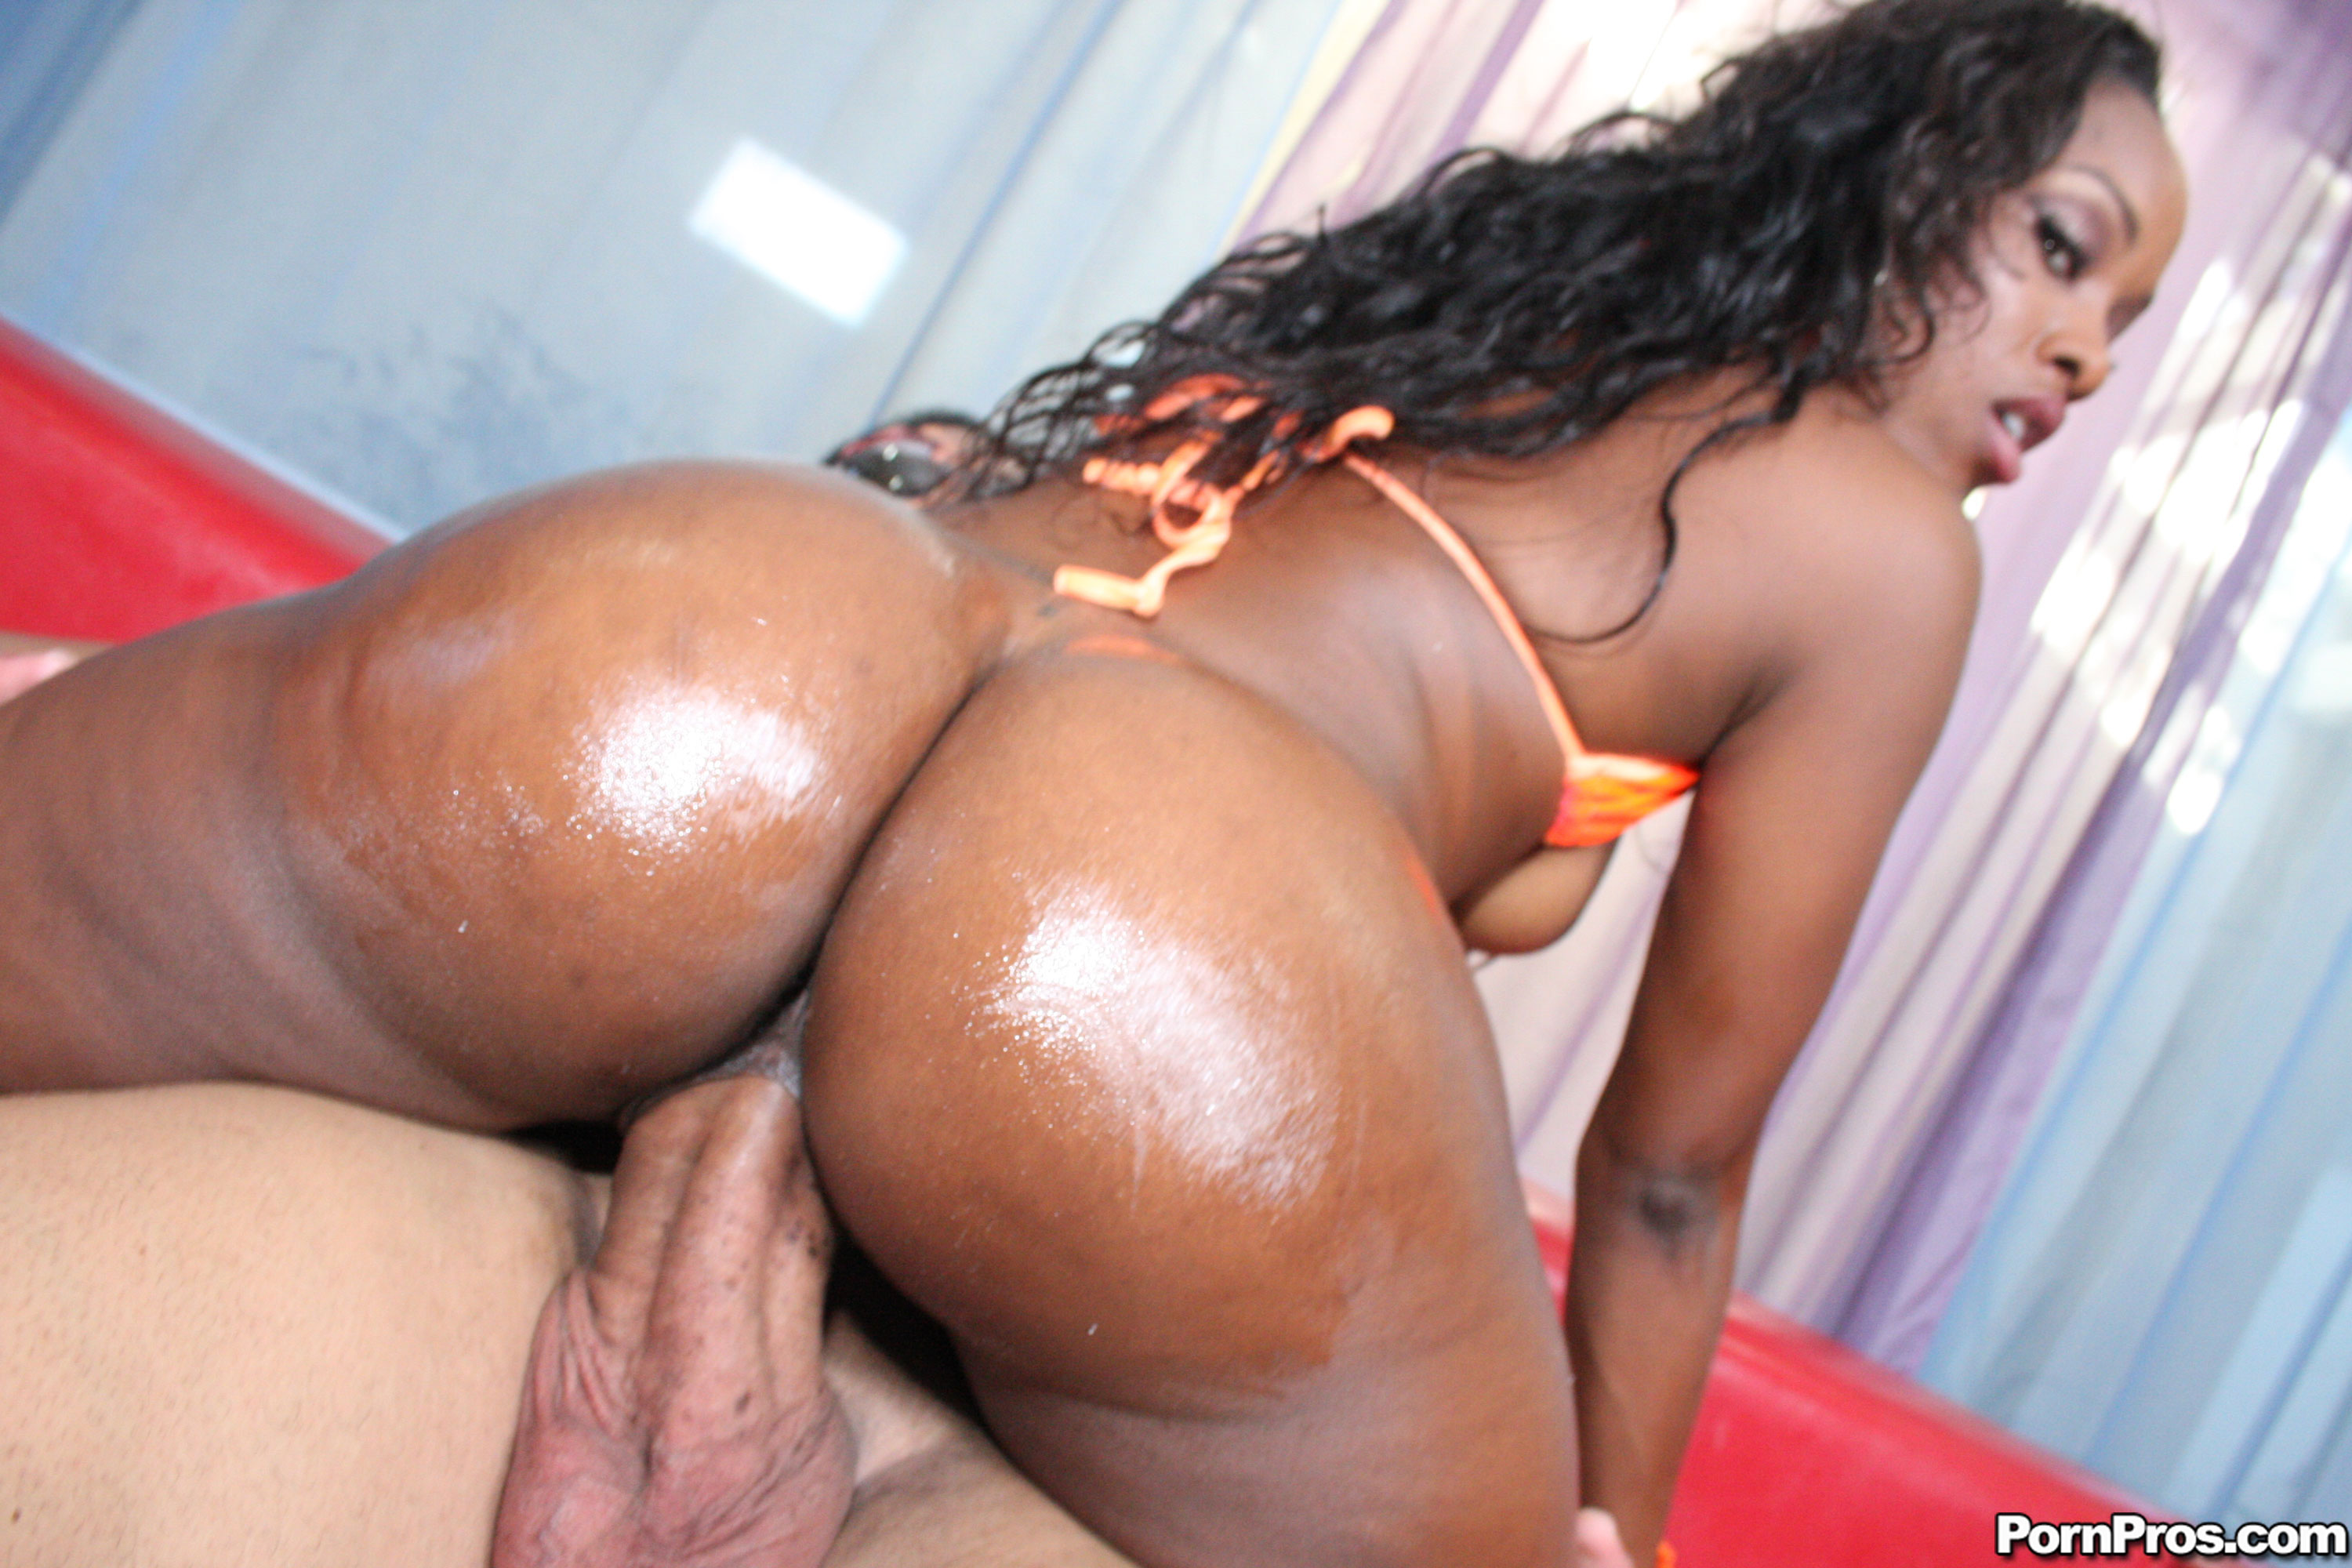 Nadu hot ass sex black amateur porn